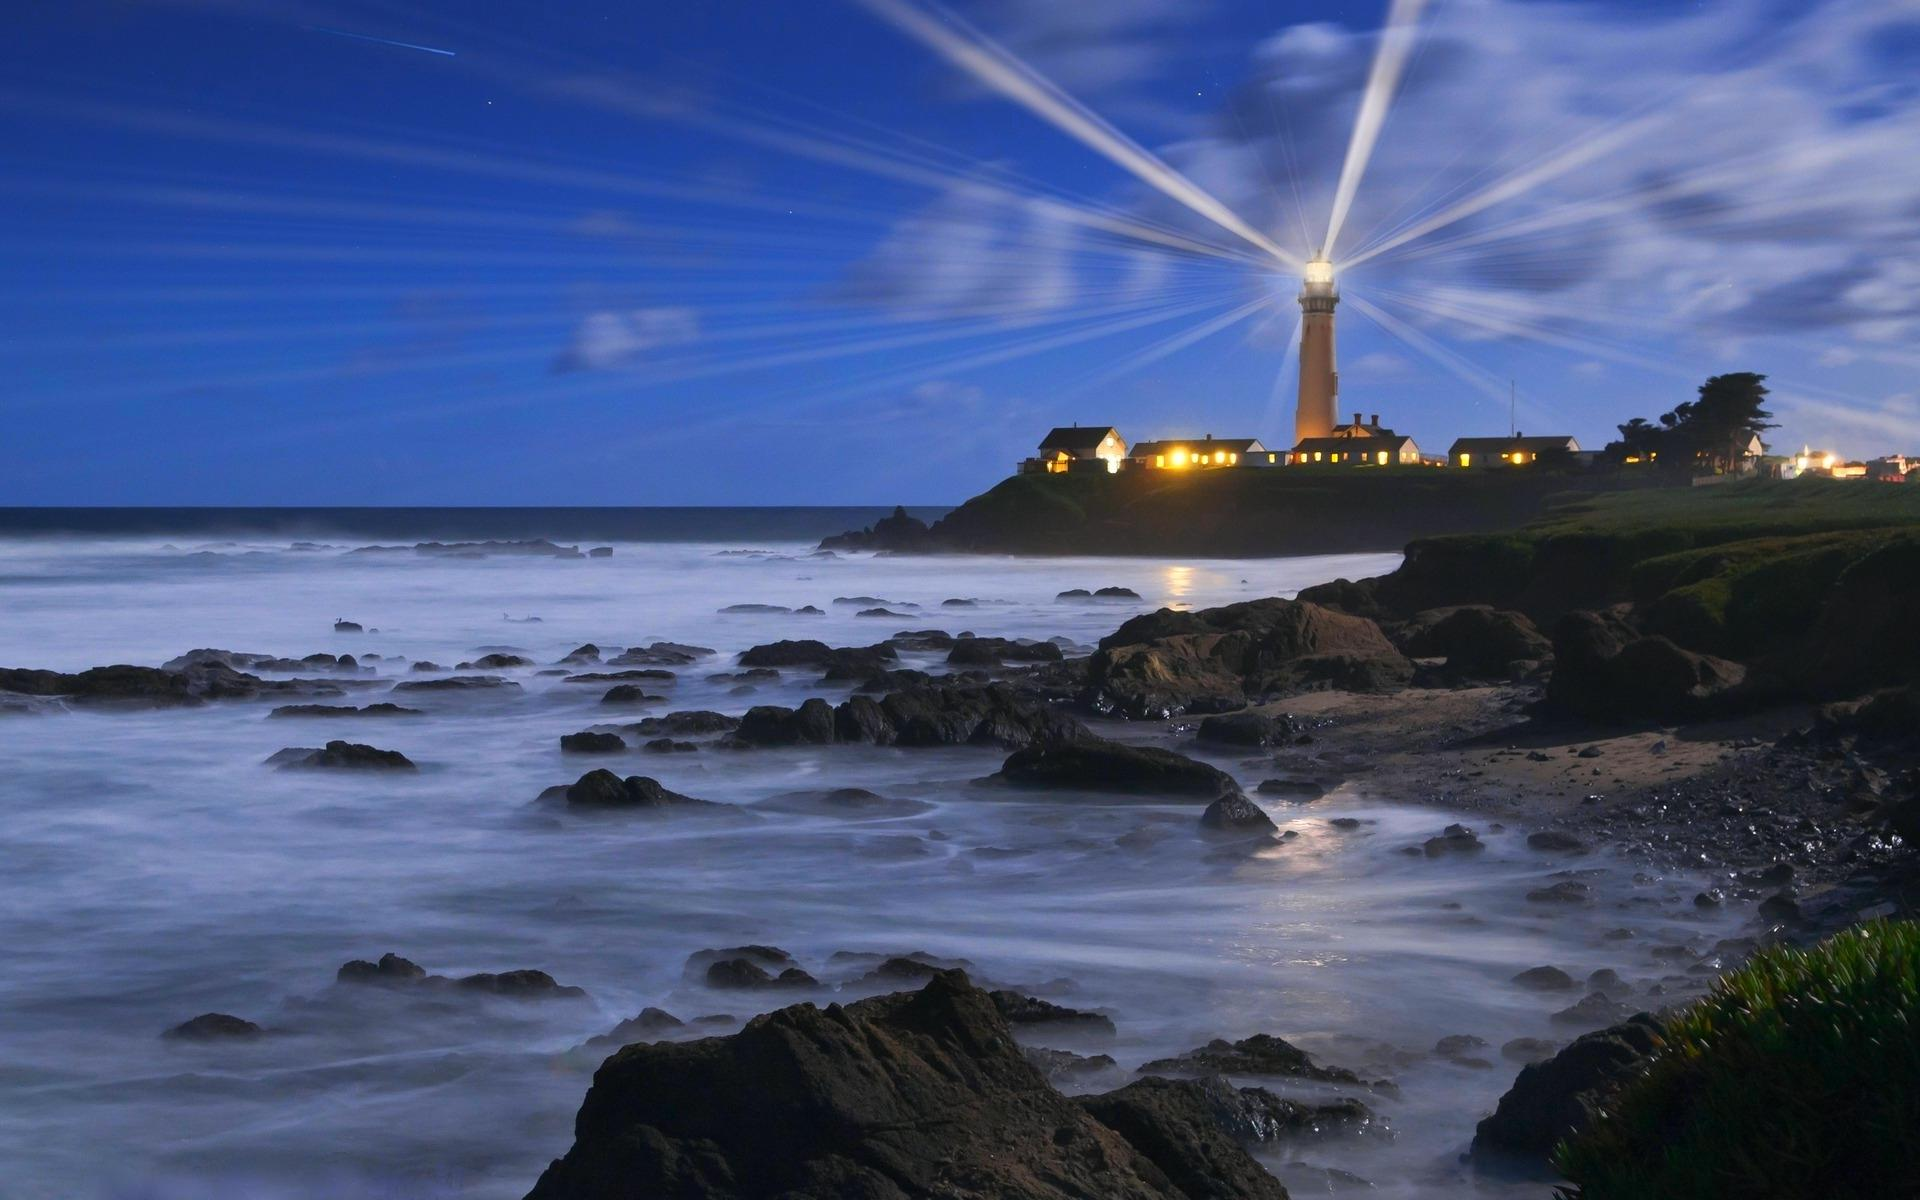 High Definition Wallpapers High: Lighthouse Images Wallpaper